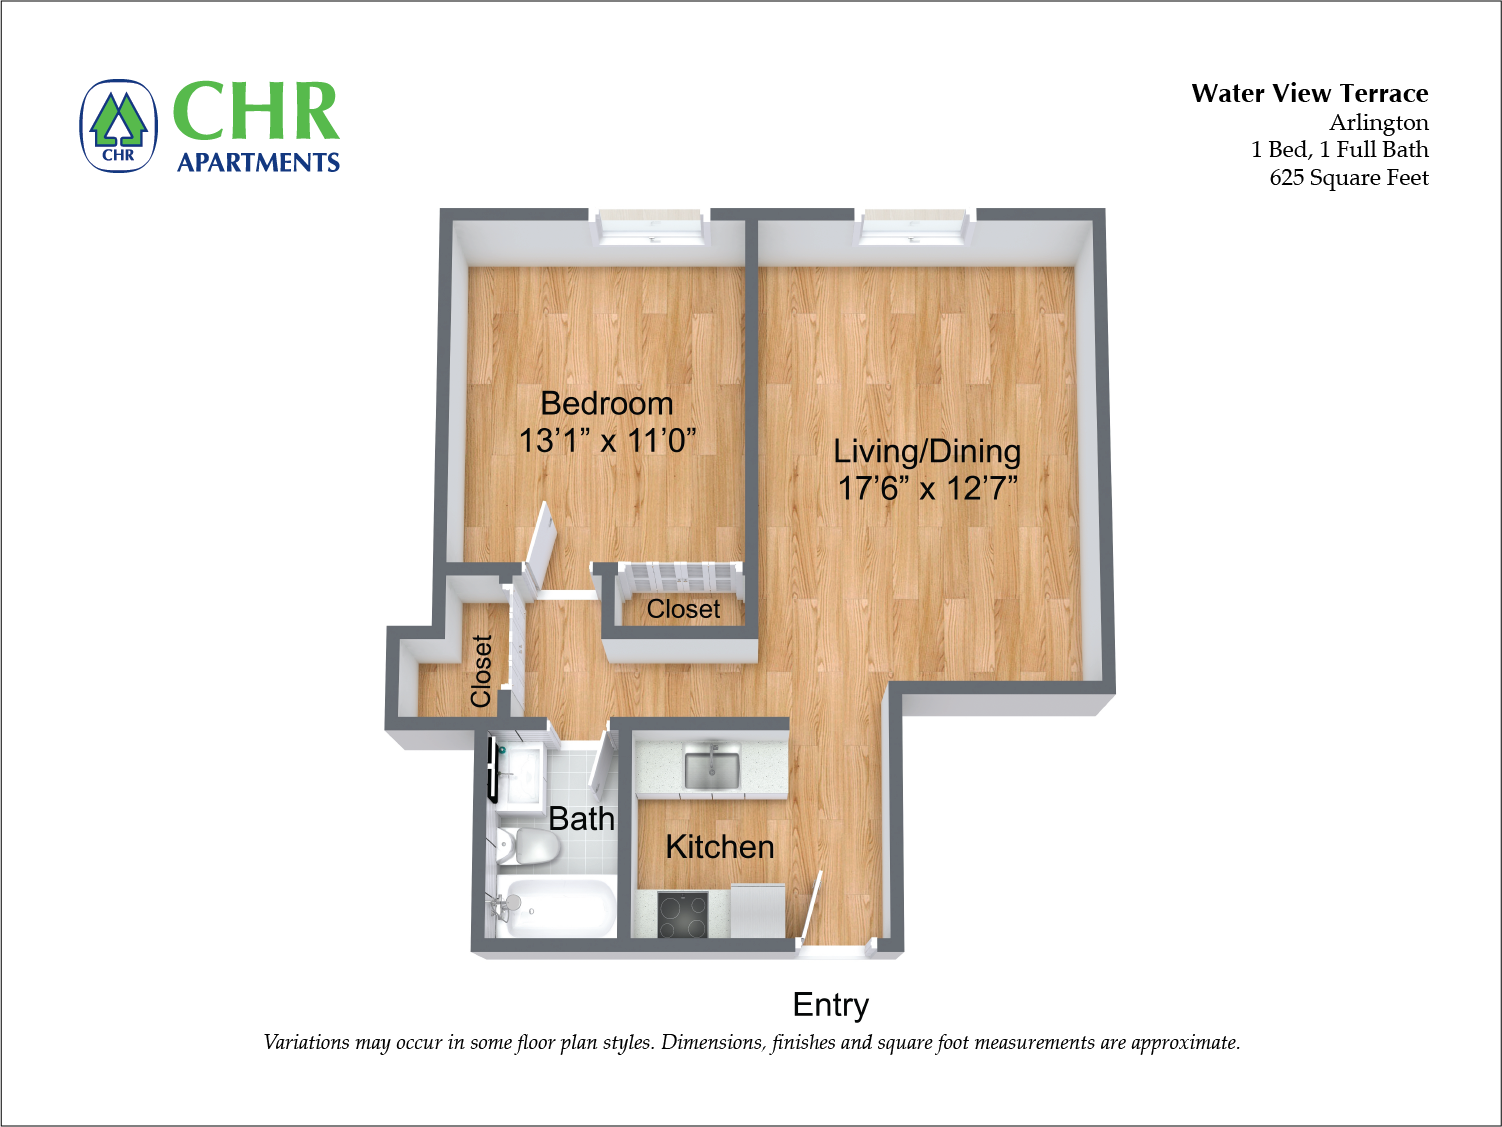 Click to view 1 Bedroom with A/C floor plan gallery